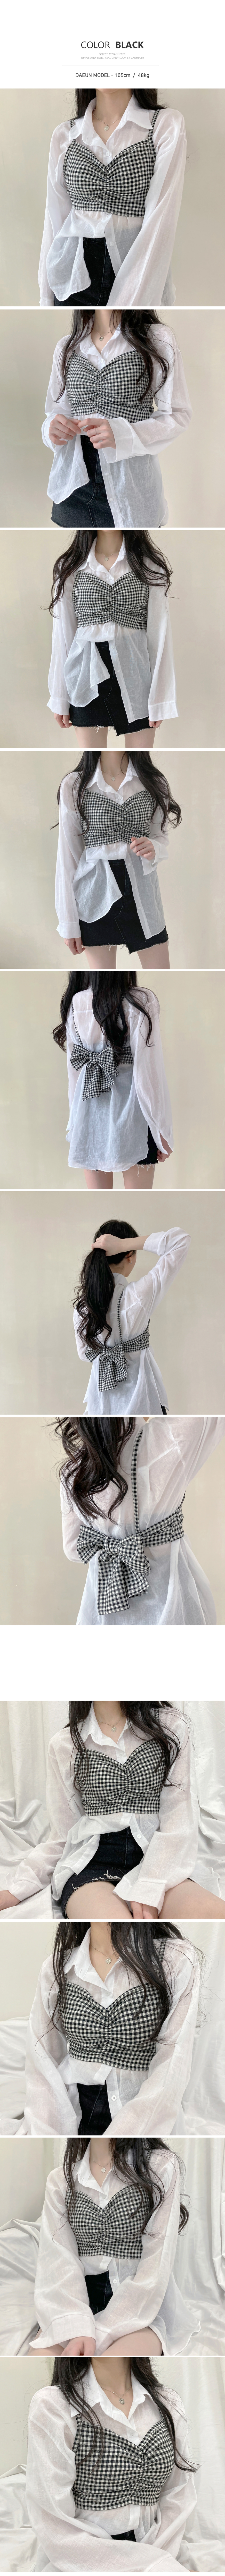 ♥ Lovely mood ♥ Check ribbon bustier T#YW629